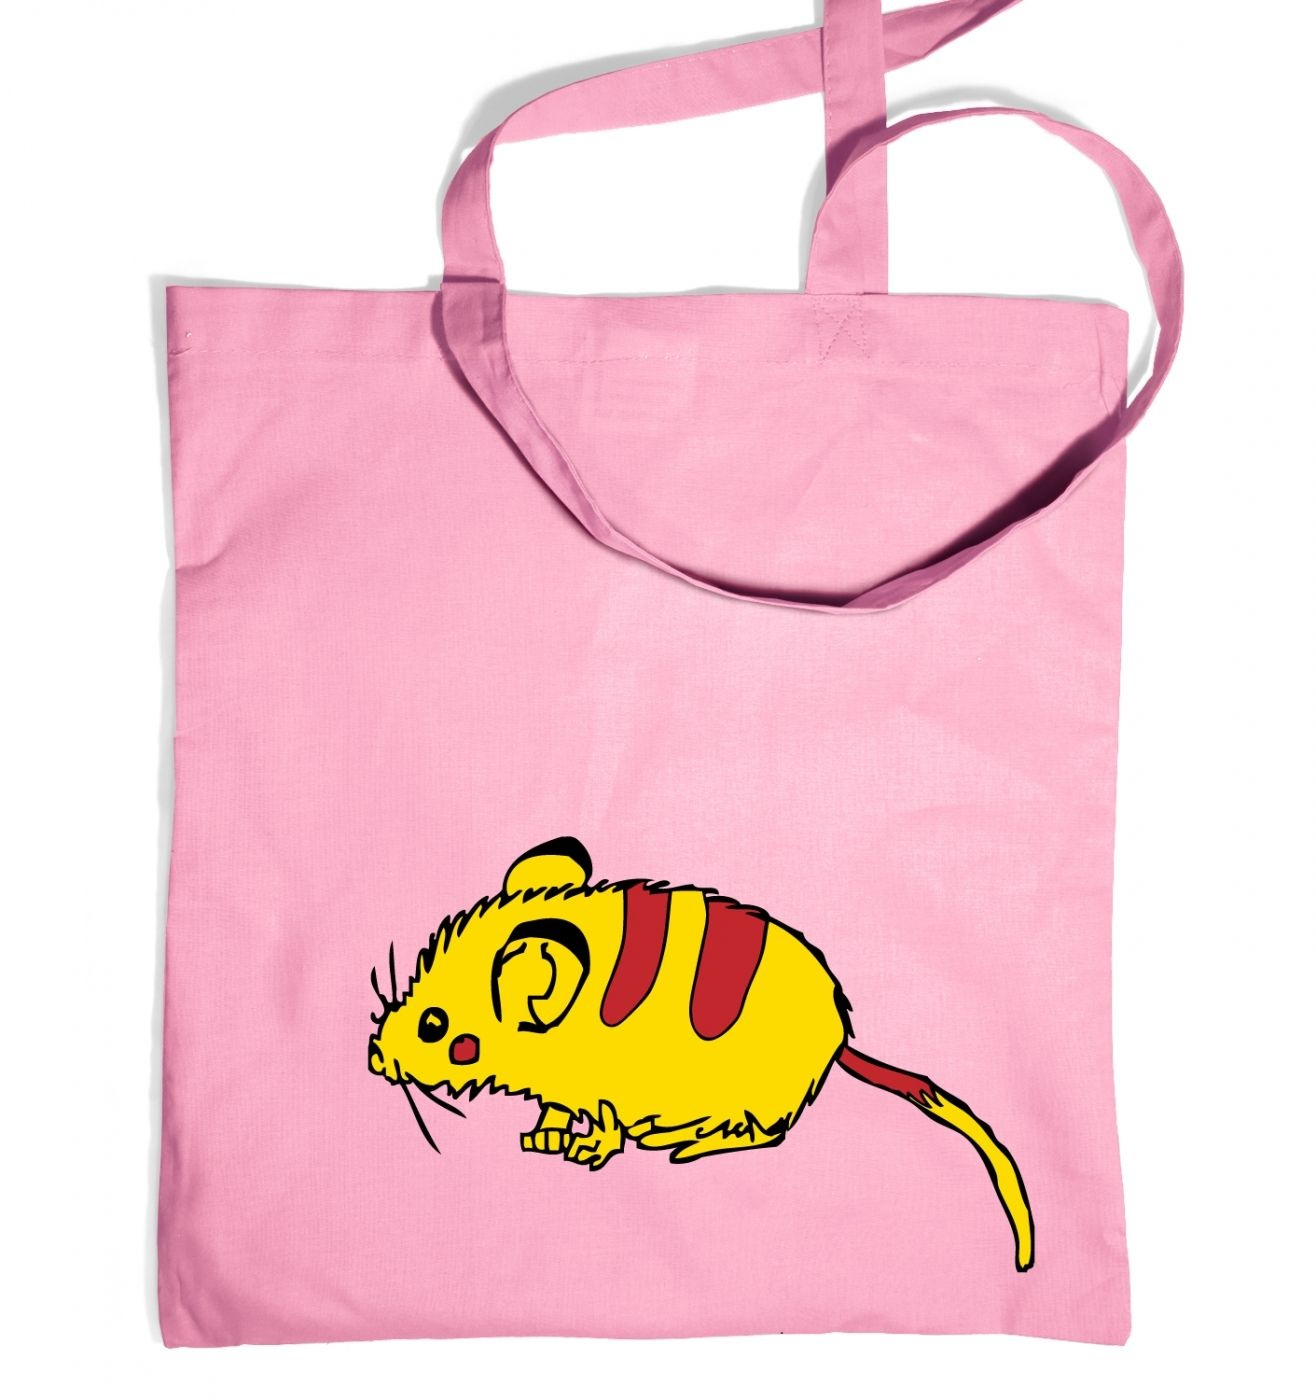 Real Life Pikachu Tote Bag - Inspired by Pokemon